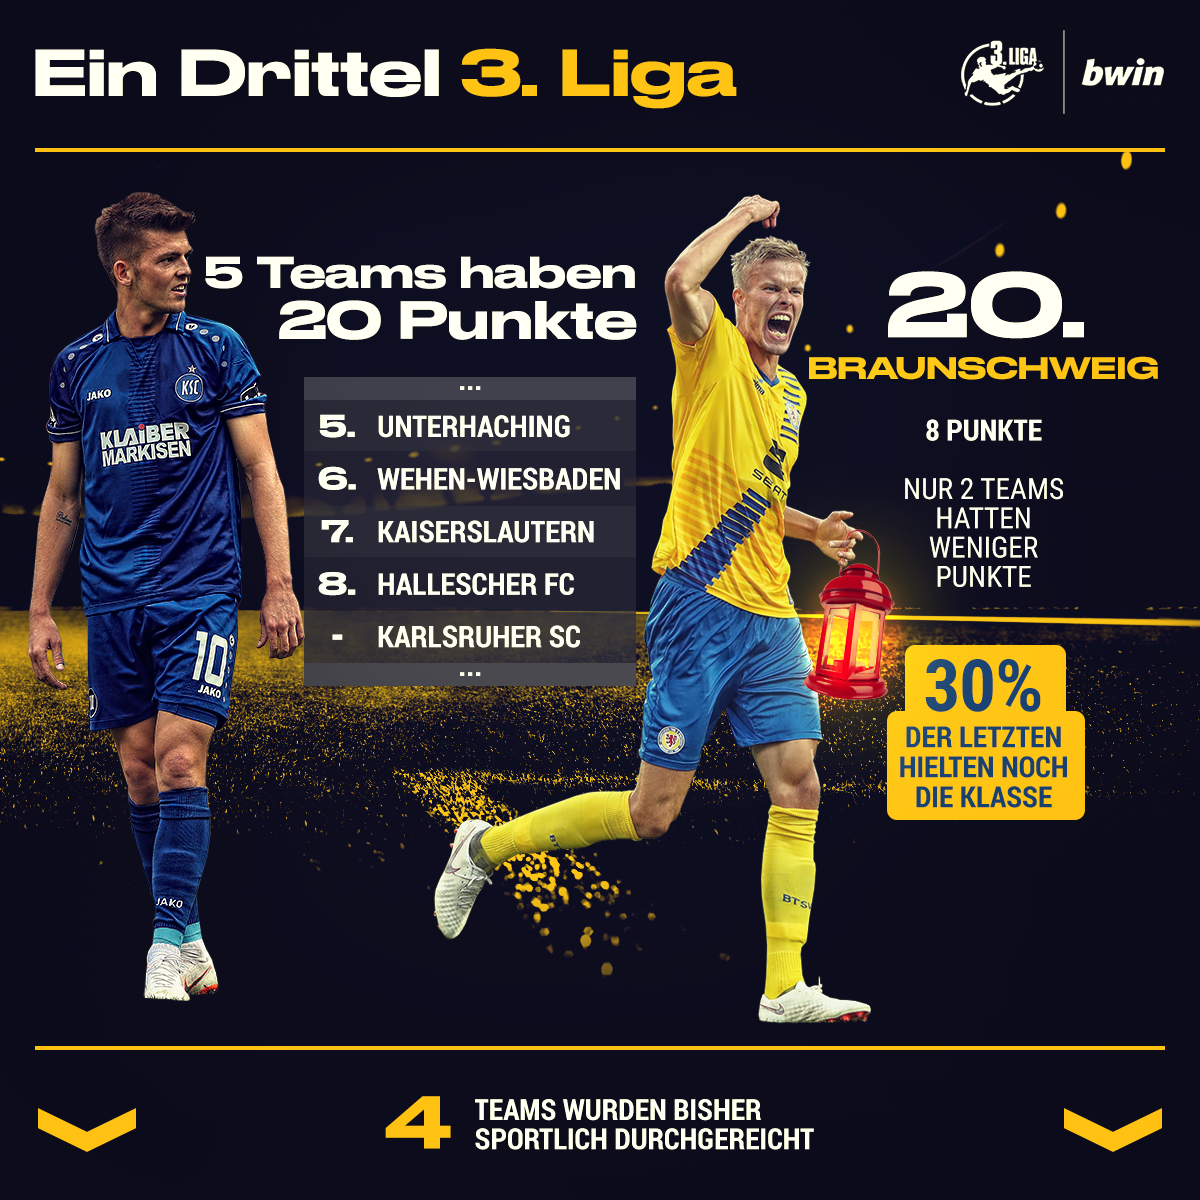 3 liga das sagt die tabelle nach einem drittel der saison aus bwin. Black Bedroom Furniture Sets. Home Design Ideas